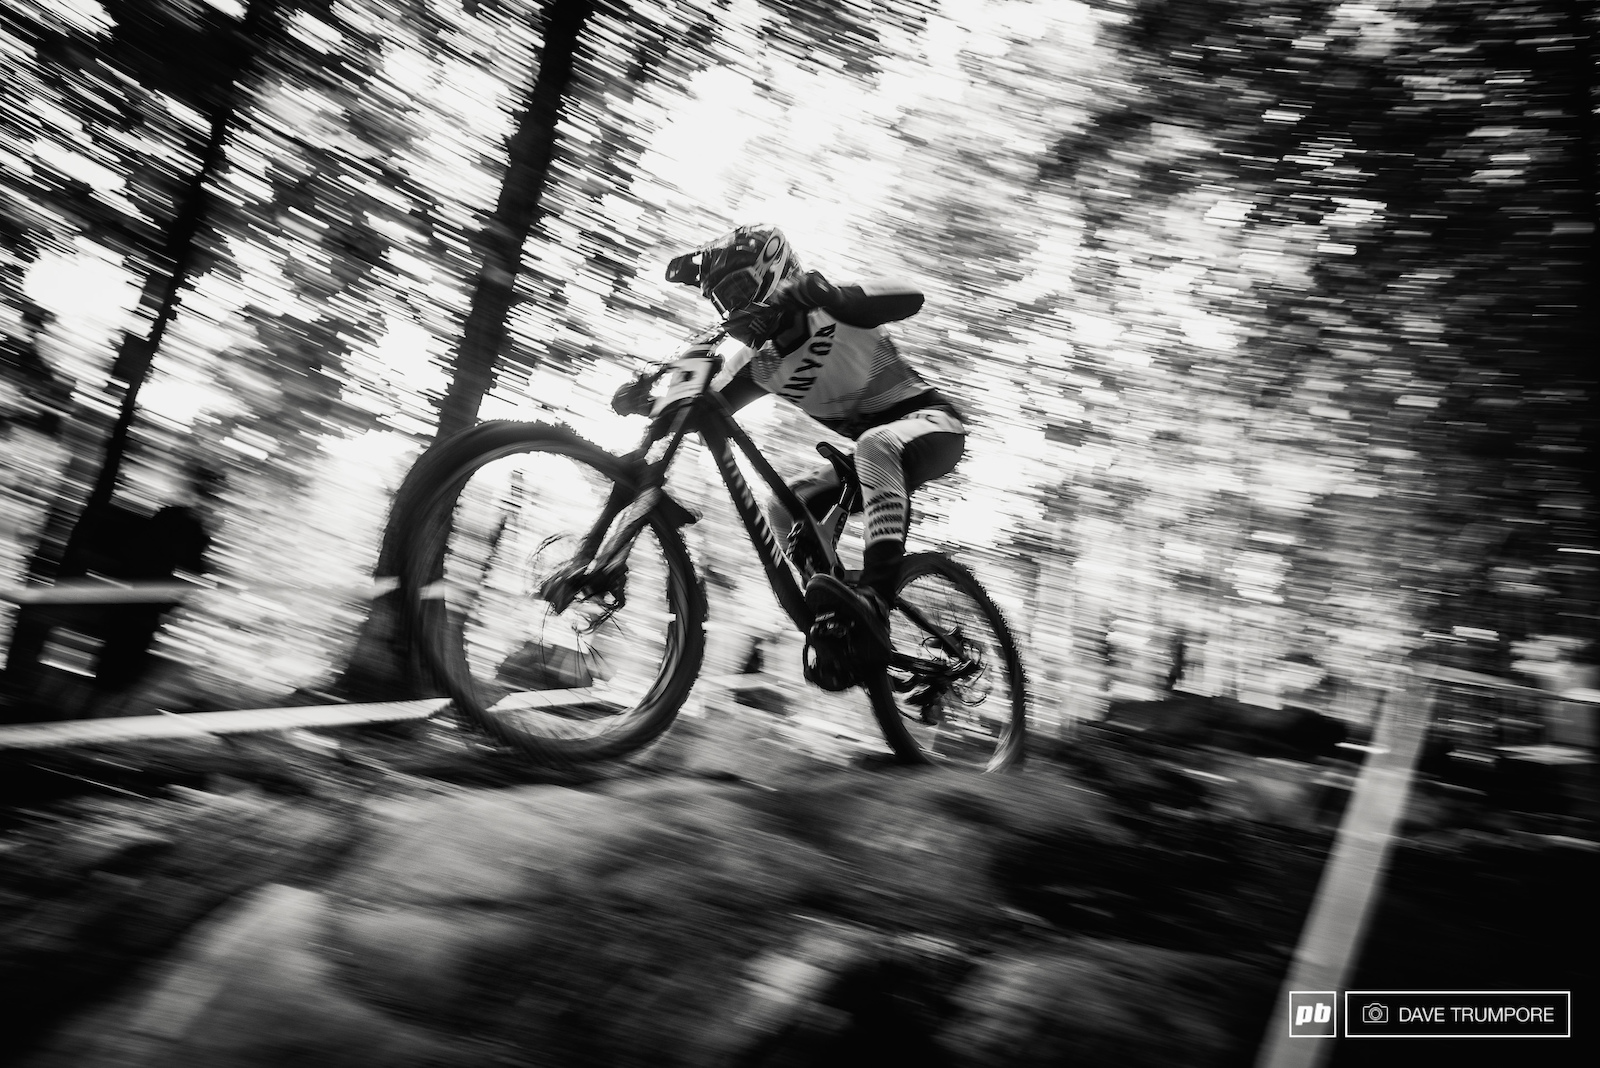 Troy Brosnan at warp speed through the lower woods.